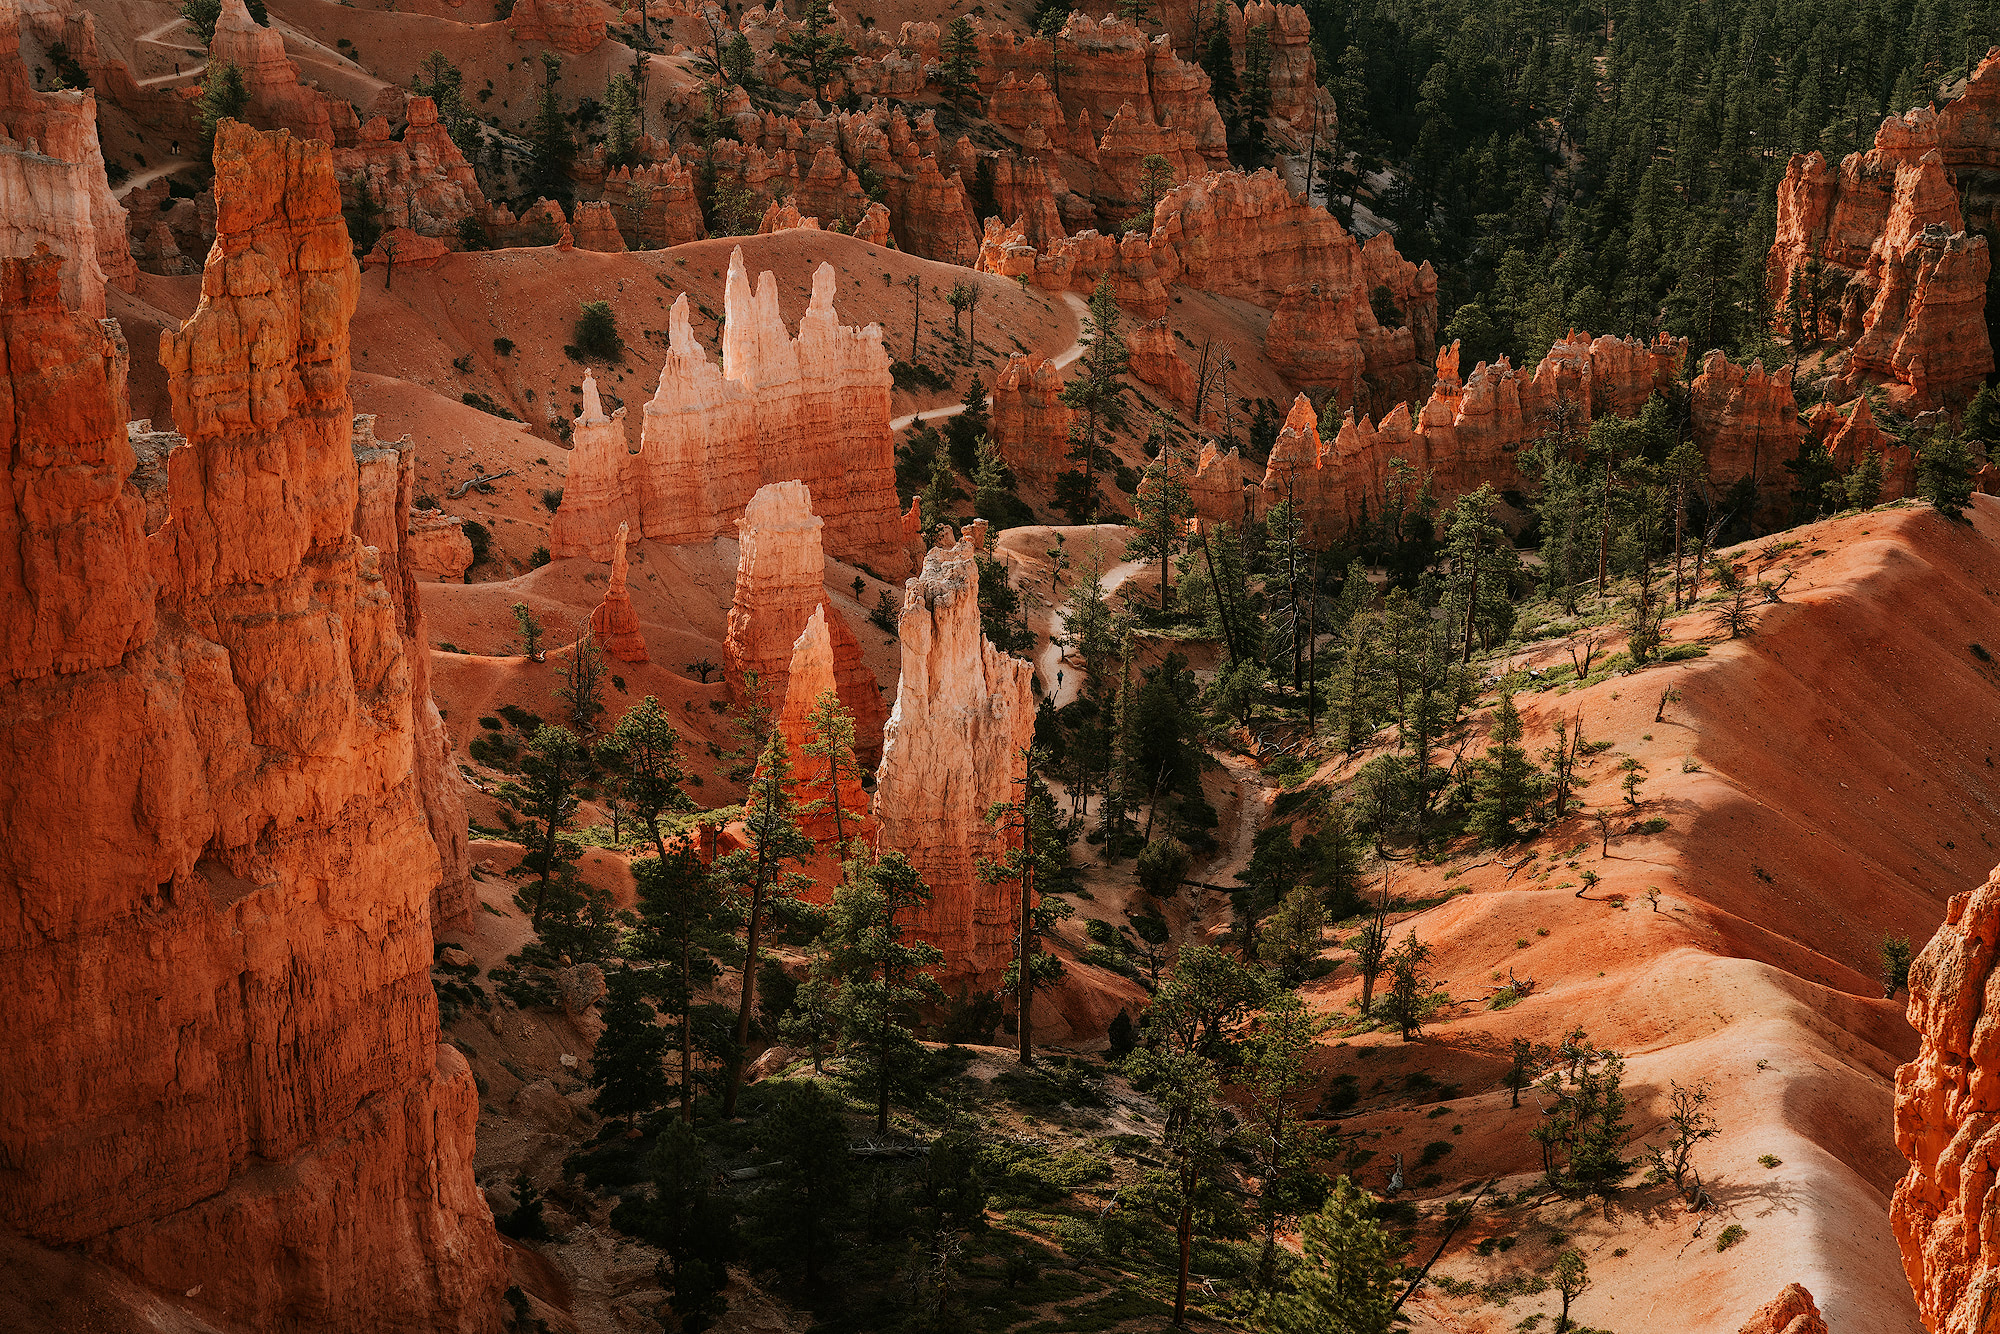 AMERICA'S NATIONAL PARKS – ALL 59 RANKED BEST TO WORST - BRYCE CANYON NATIONAL PARK